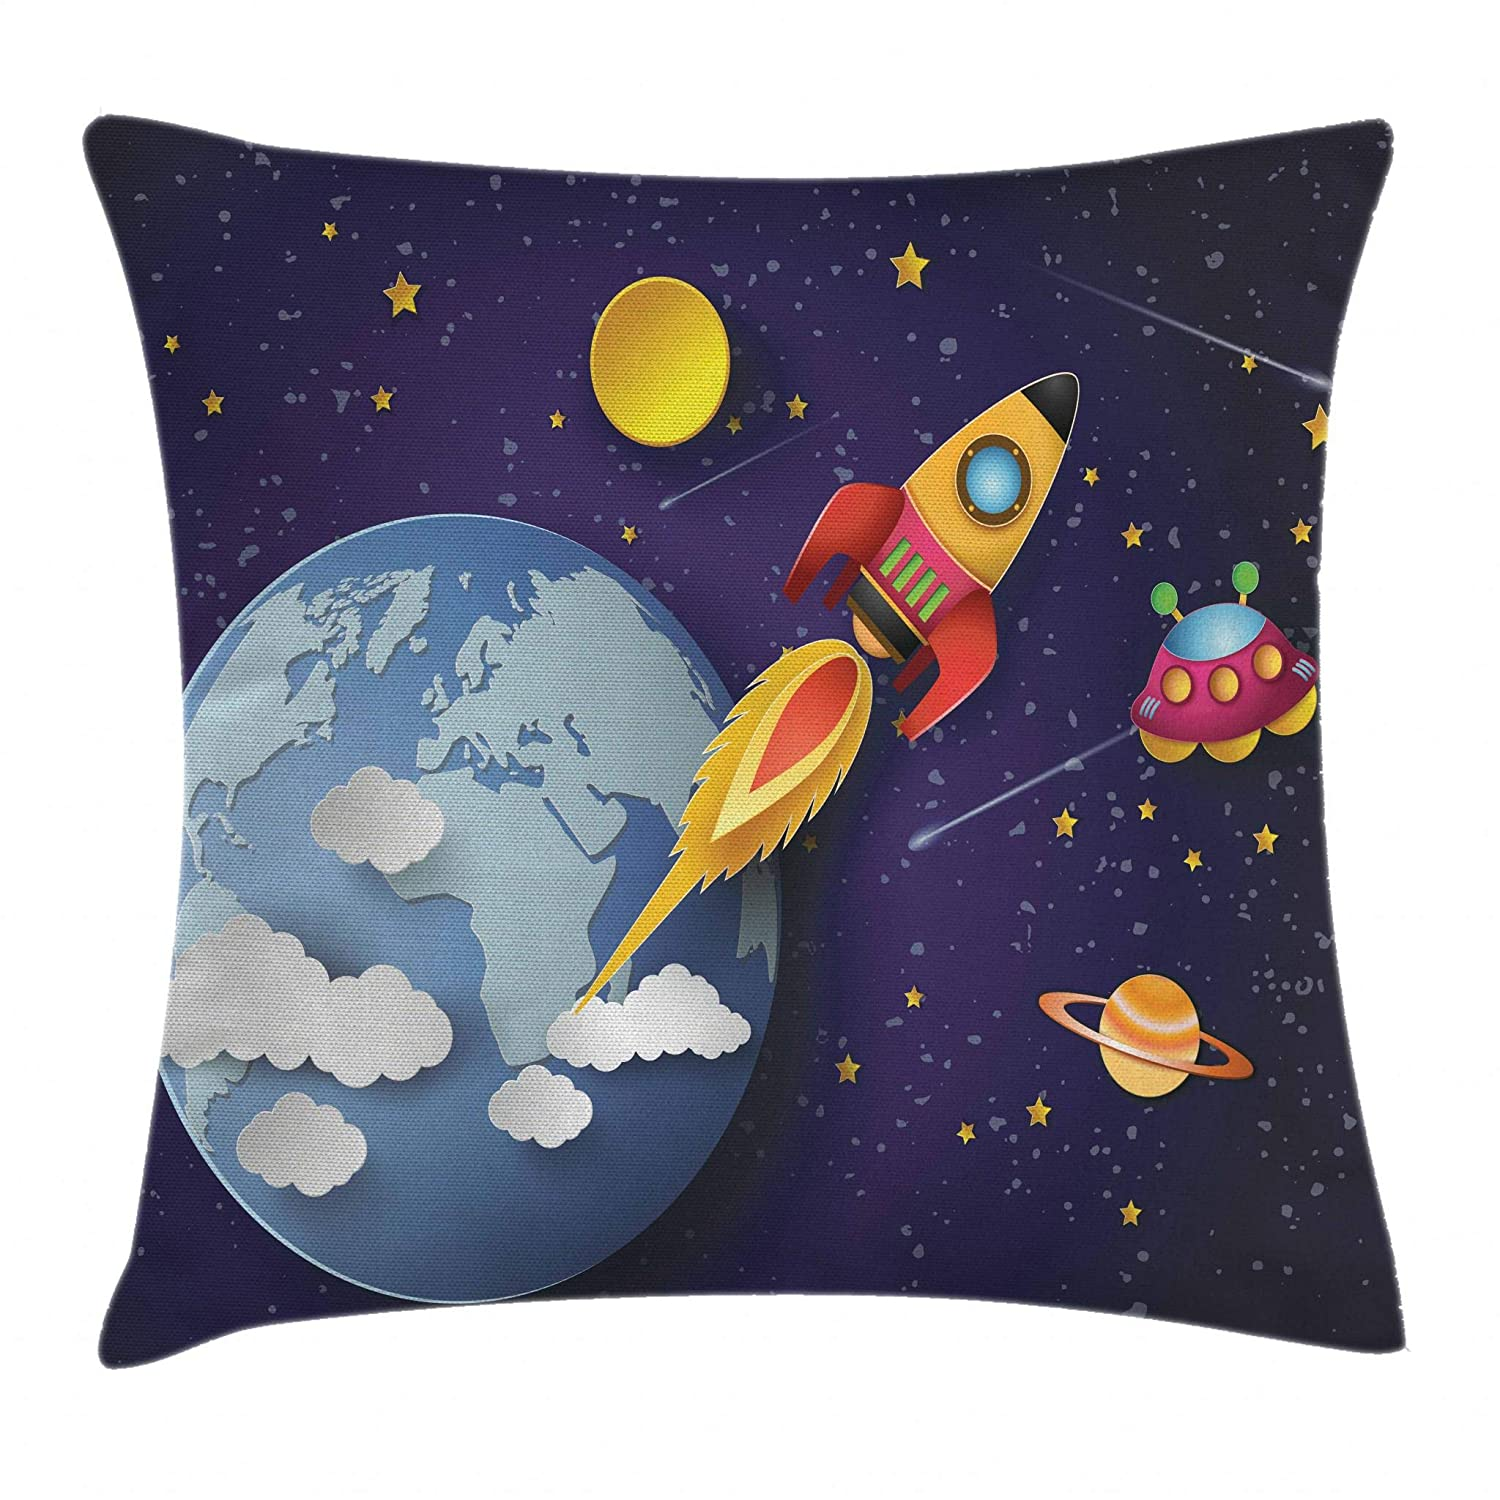 Ambesonne Outer Space Throw Pillow Cushion Cover, Rocket on Planetary System with Earth Stars UFO Saturn Sun Galaxy Boys Print, Decorative Square Accent Pillow Case, 16 X 16 Inches, Multicolor min_32776_16X16